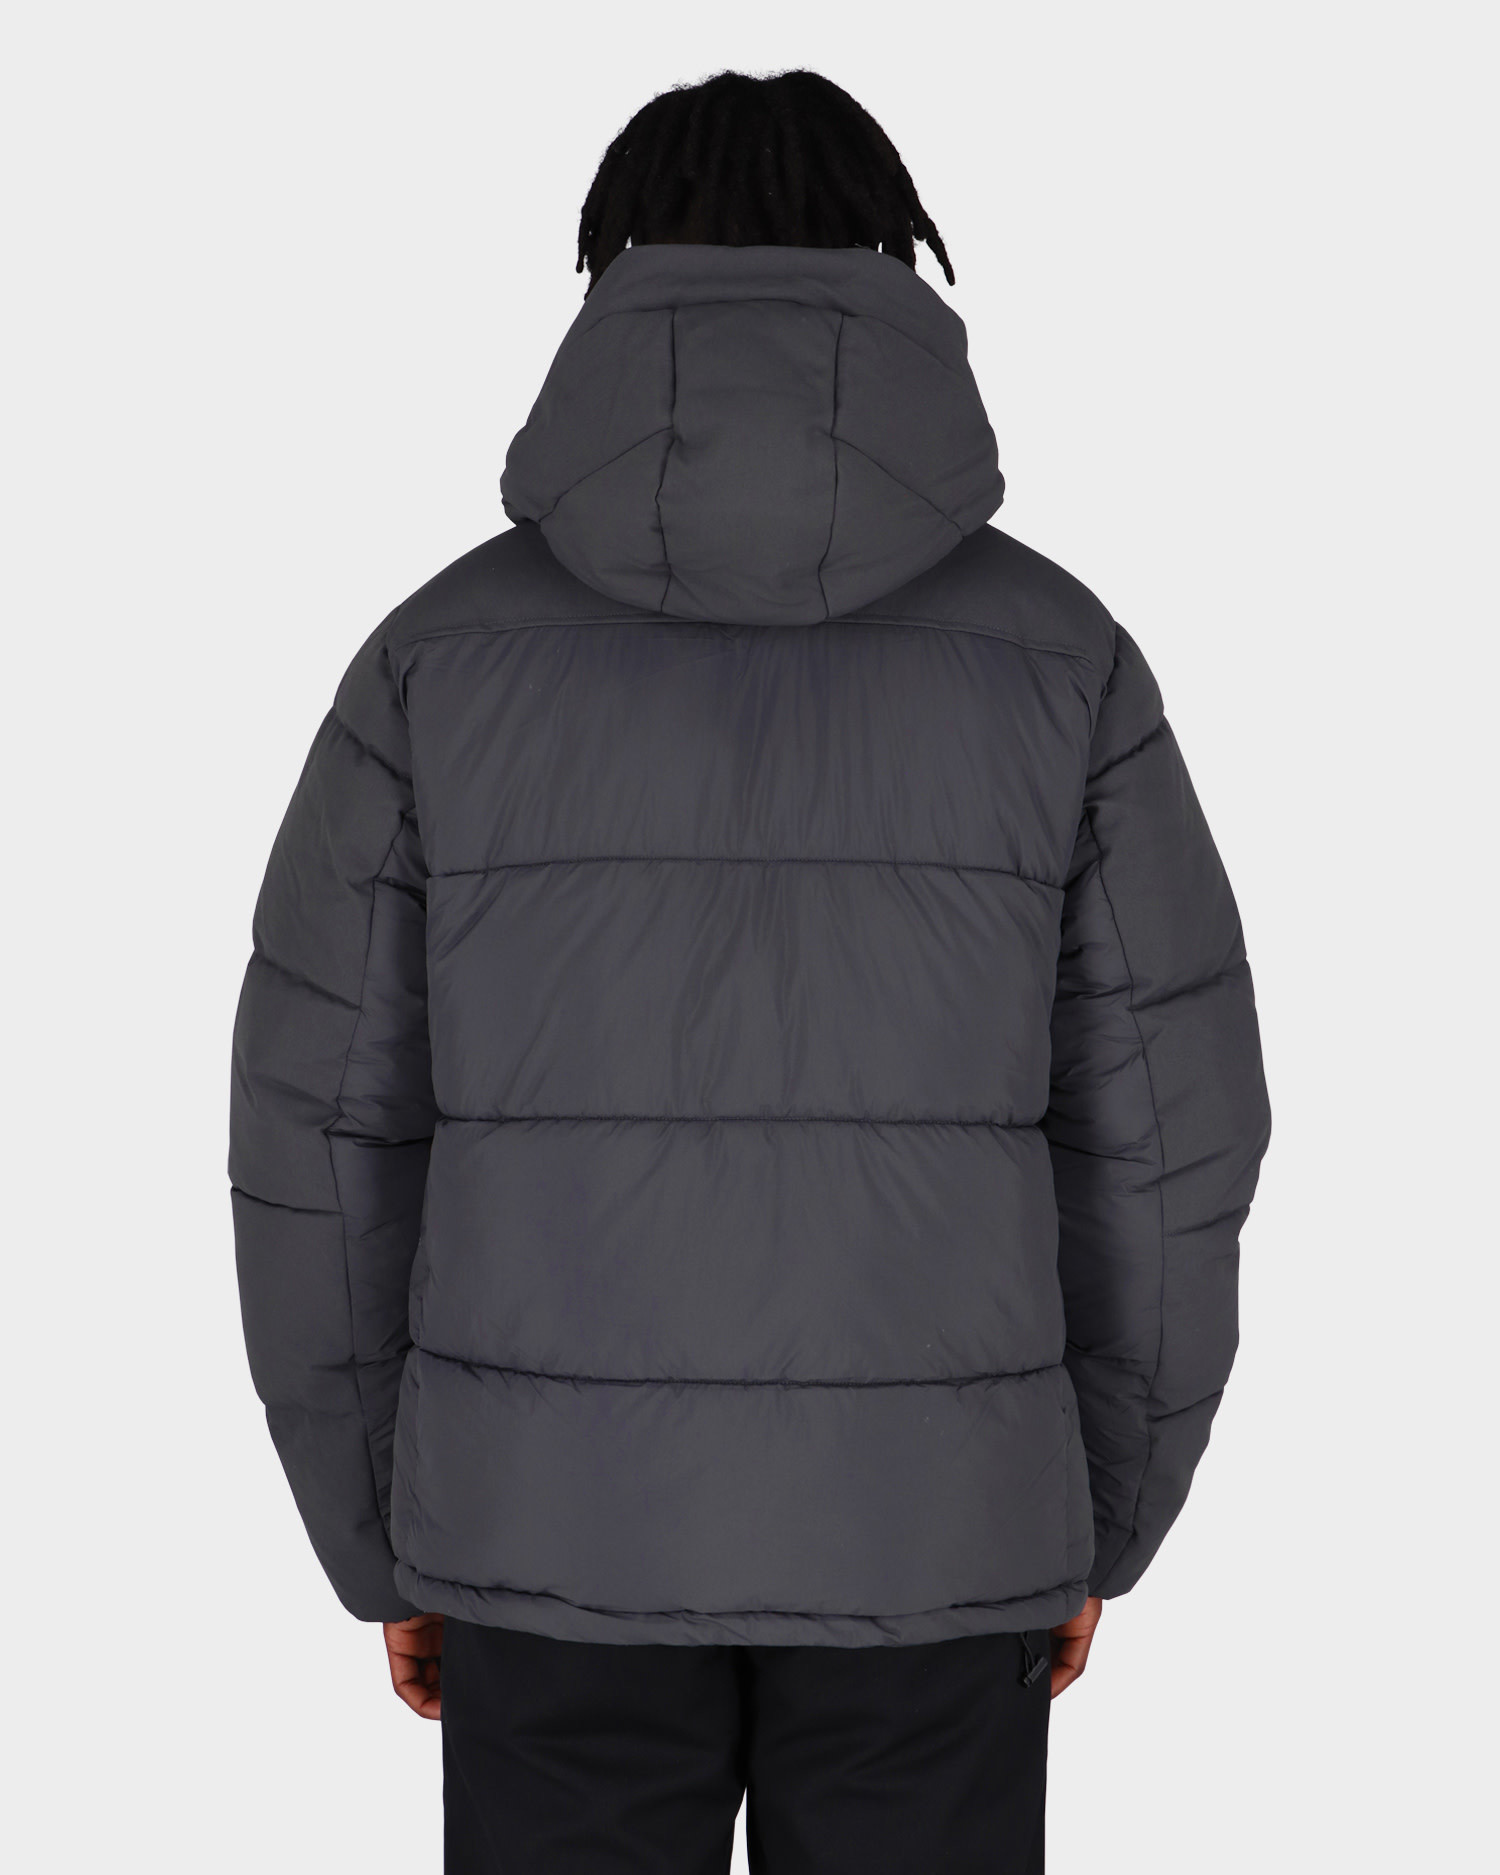 Pop Trading Co Alex Padded Jacket Charcoal